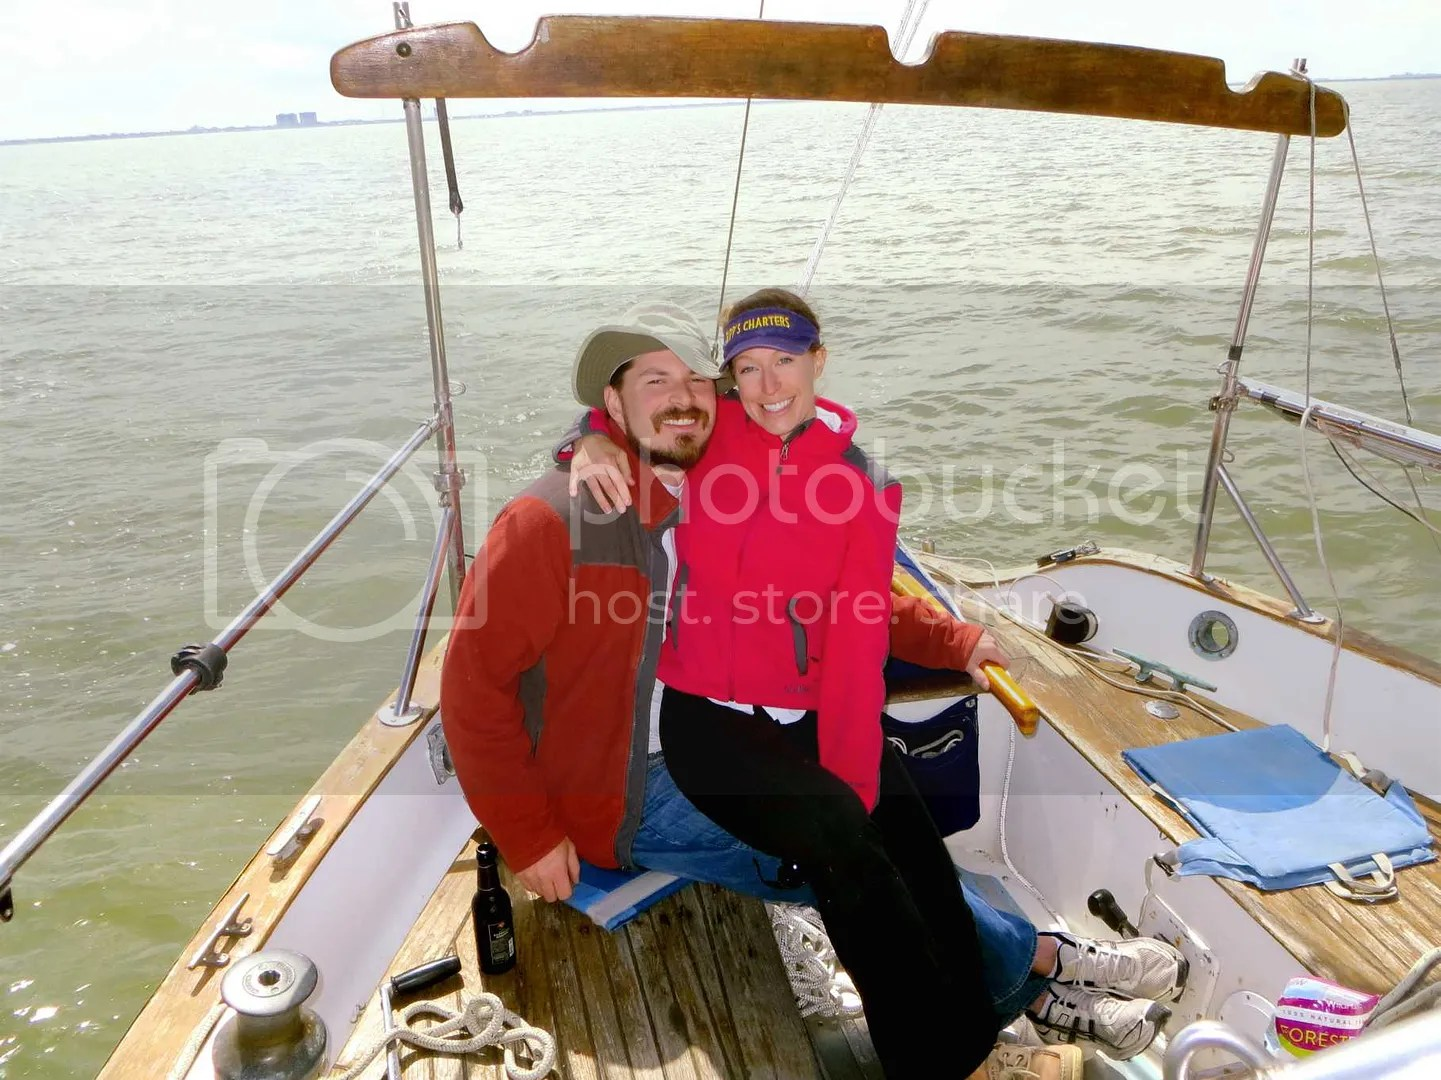 Tate and Dani finally sailing again